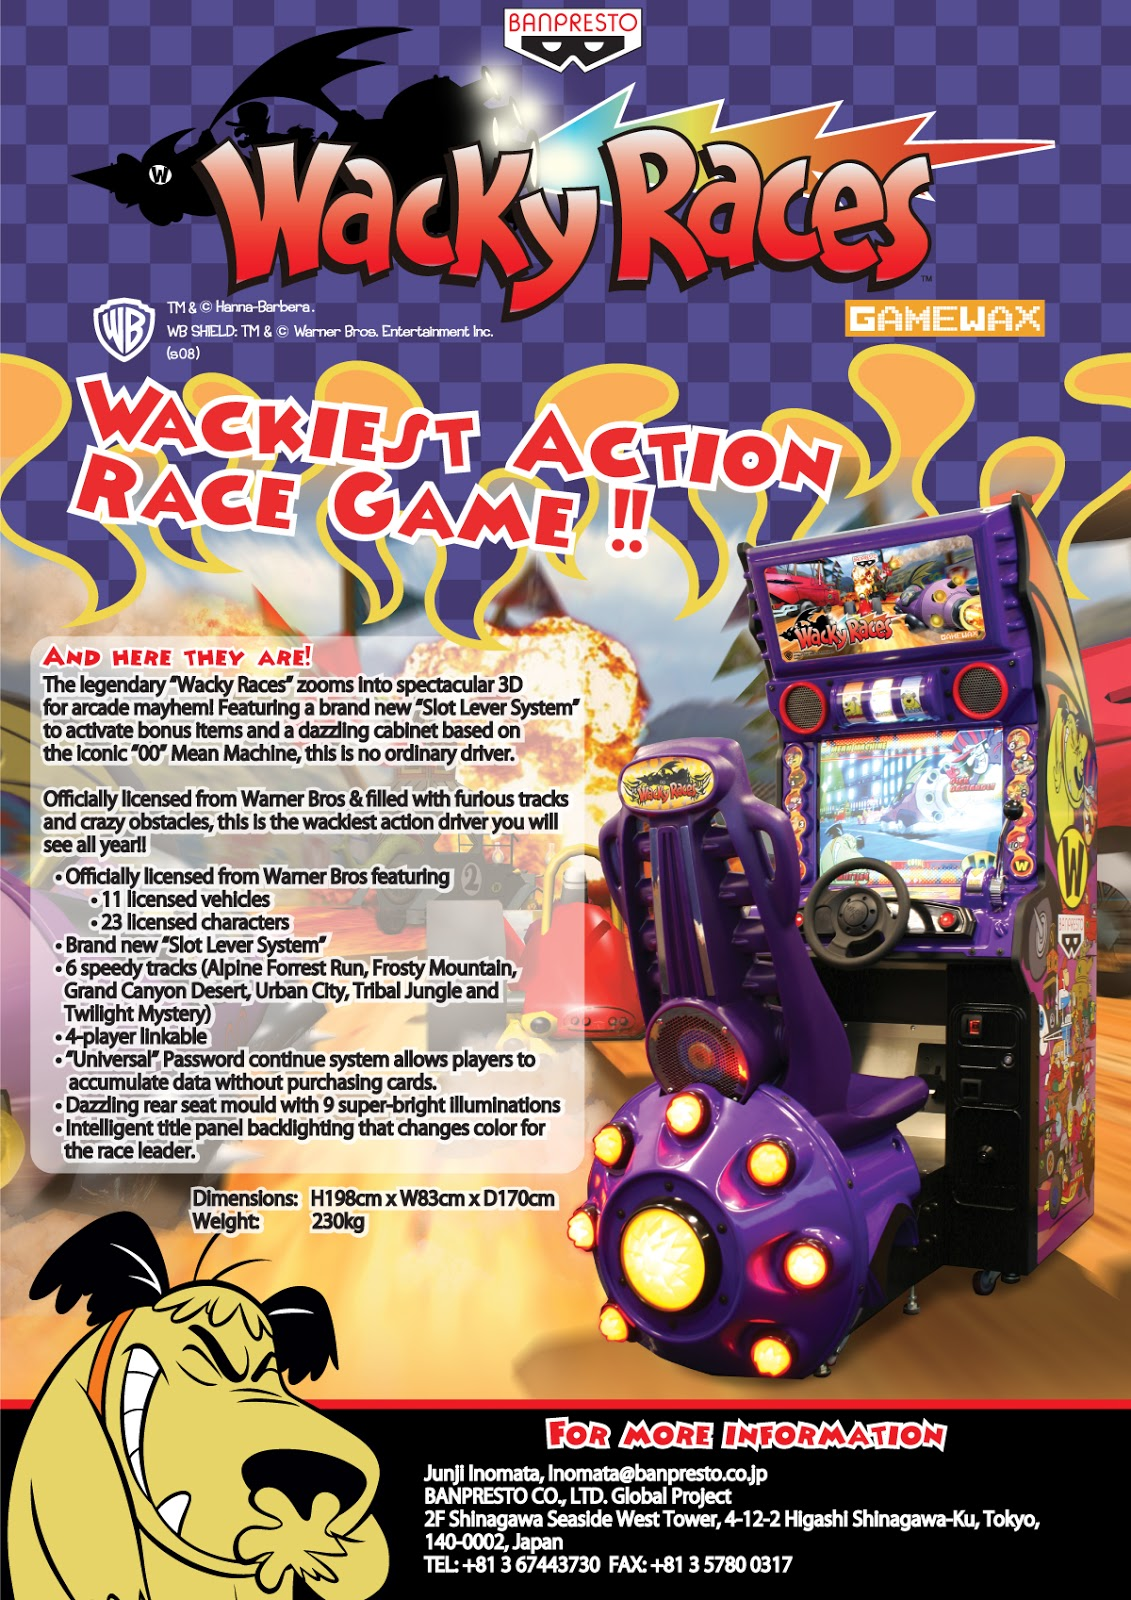 Reflections on Cult Movies and Classic TV: Wacky Races Arcade Game